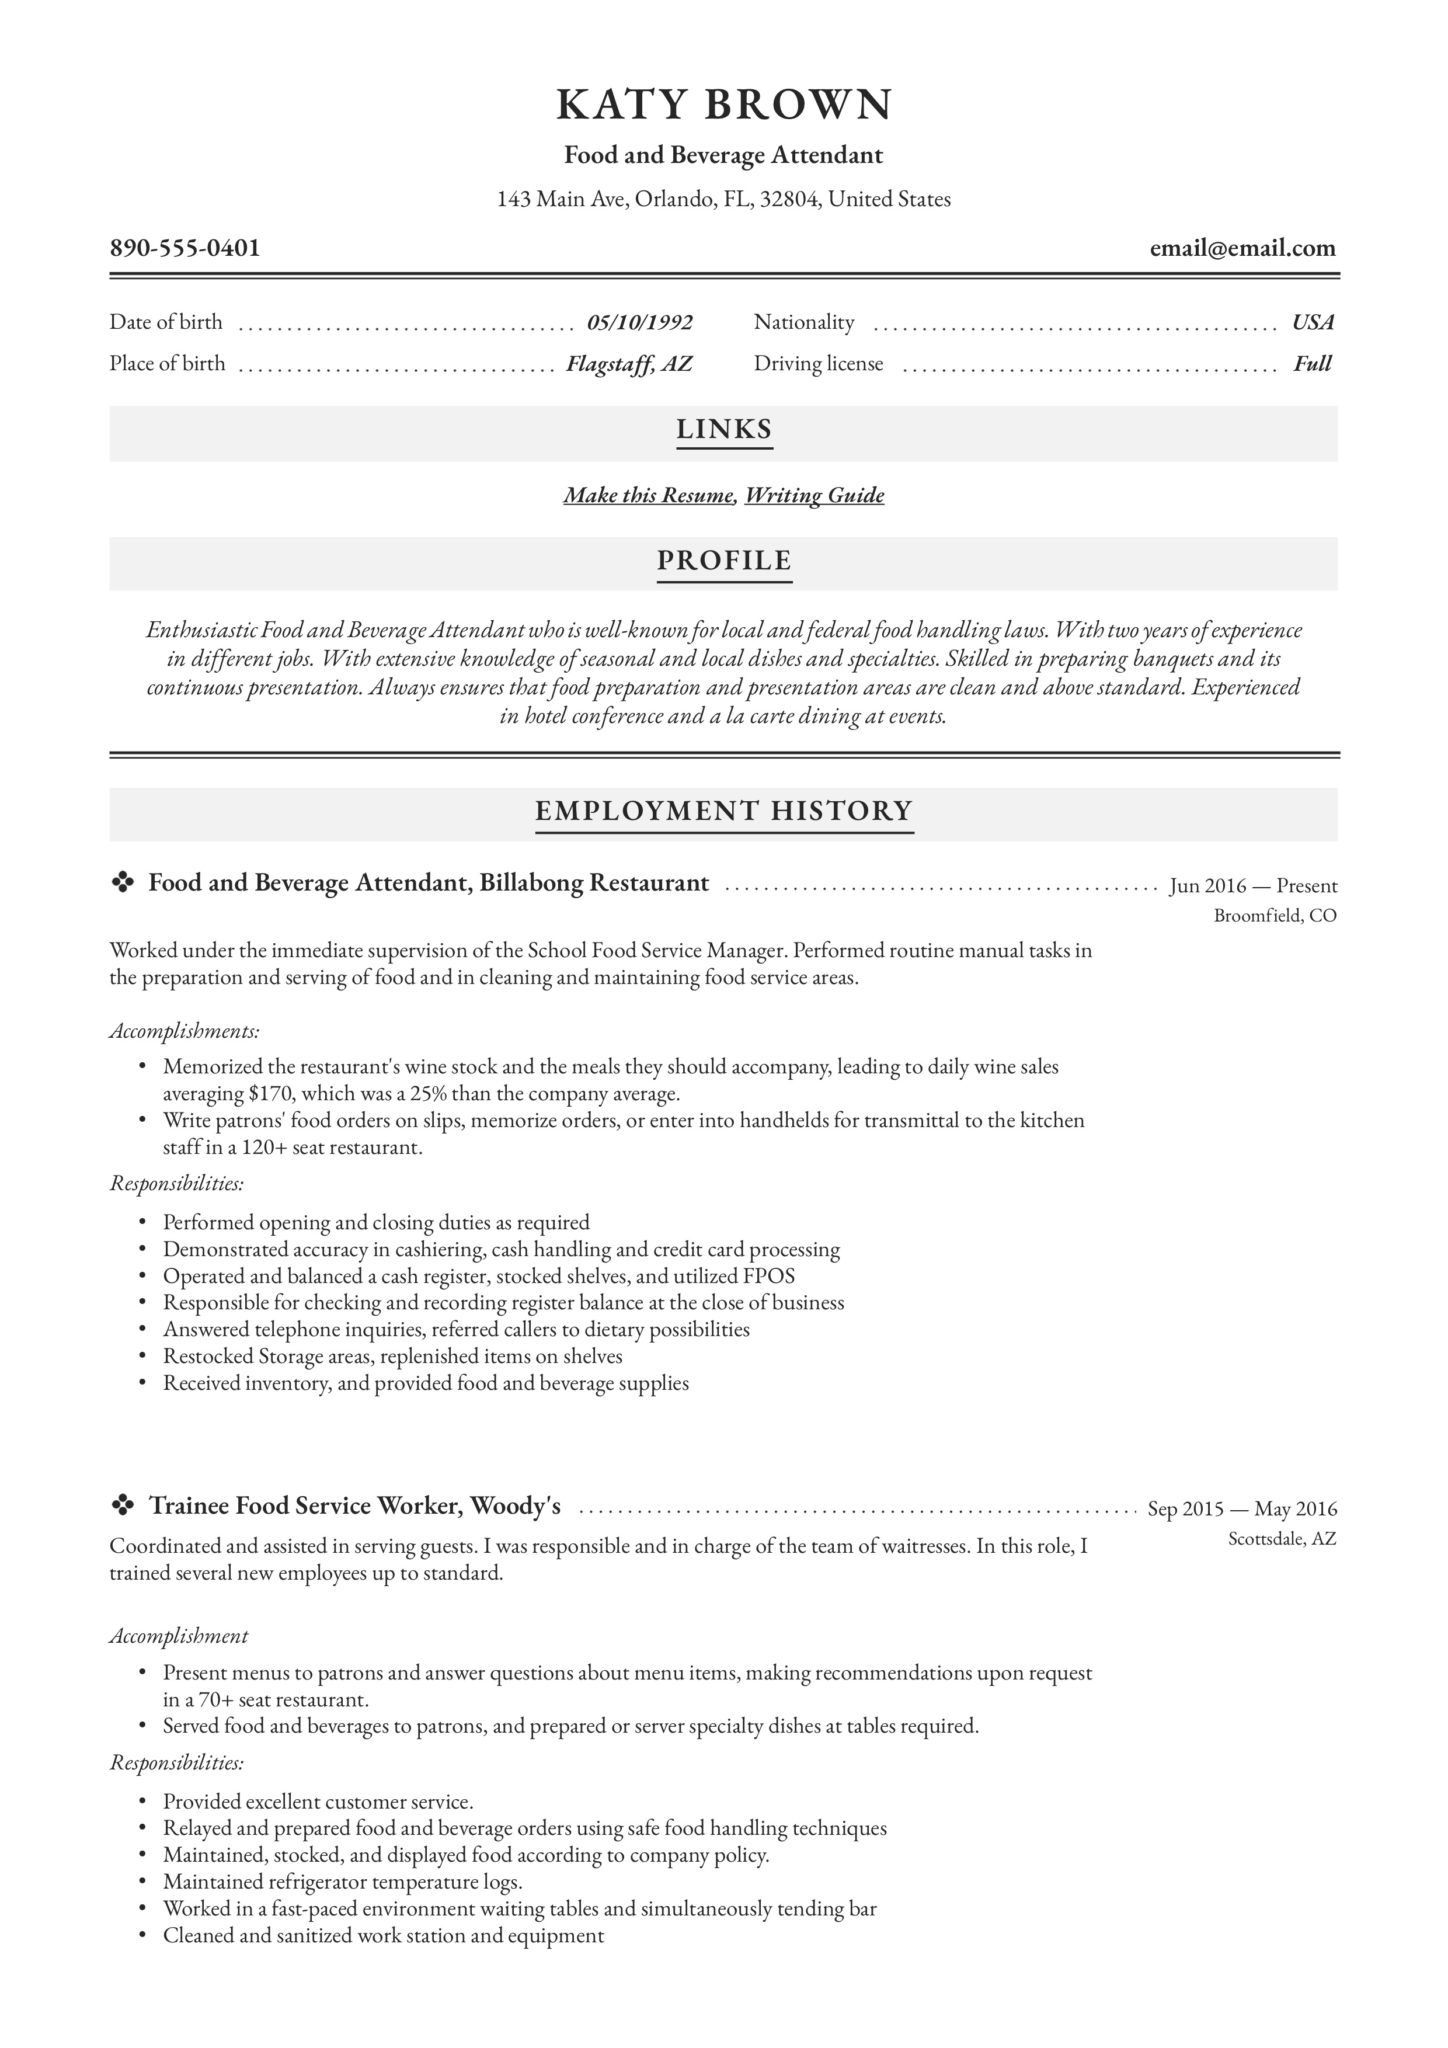 food and beverage attendant resume examples word pdf service scaled college degree on Resume Service Attendant Resume